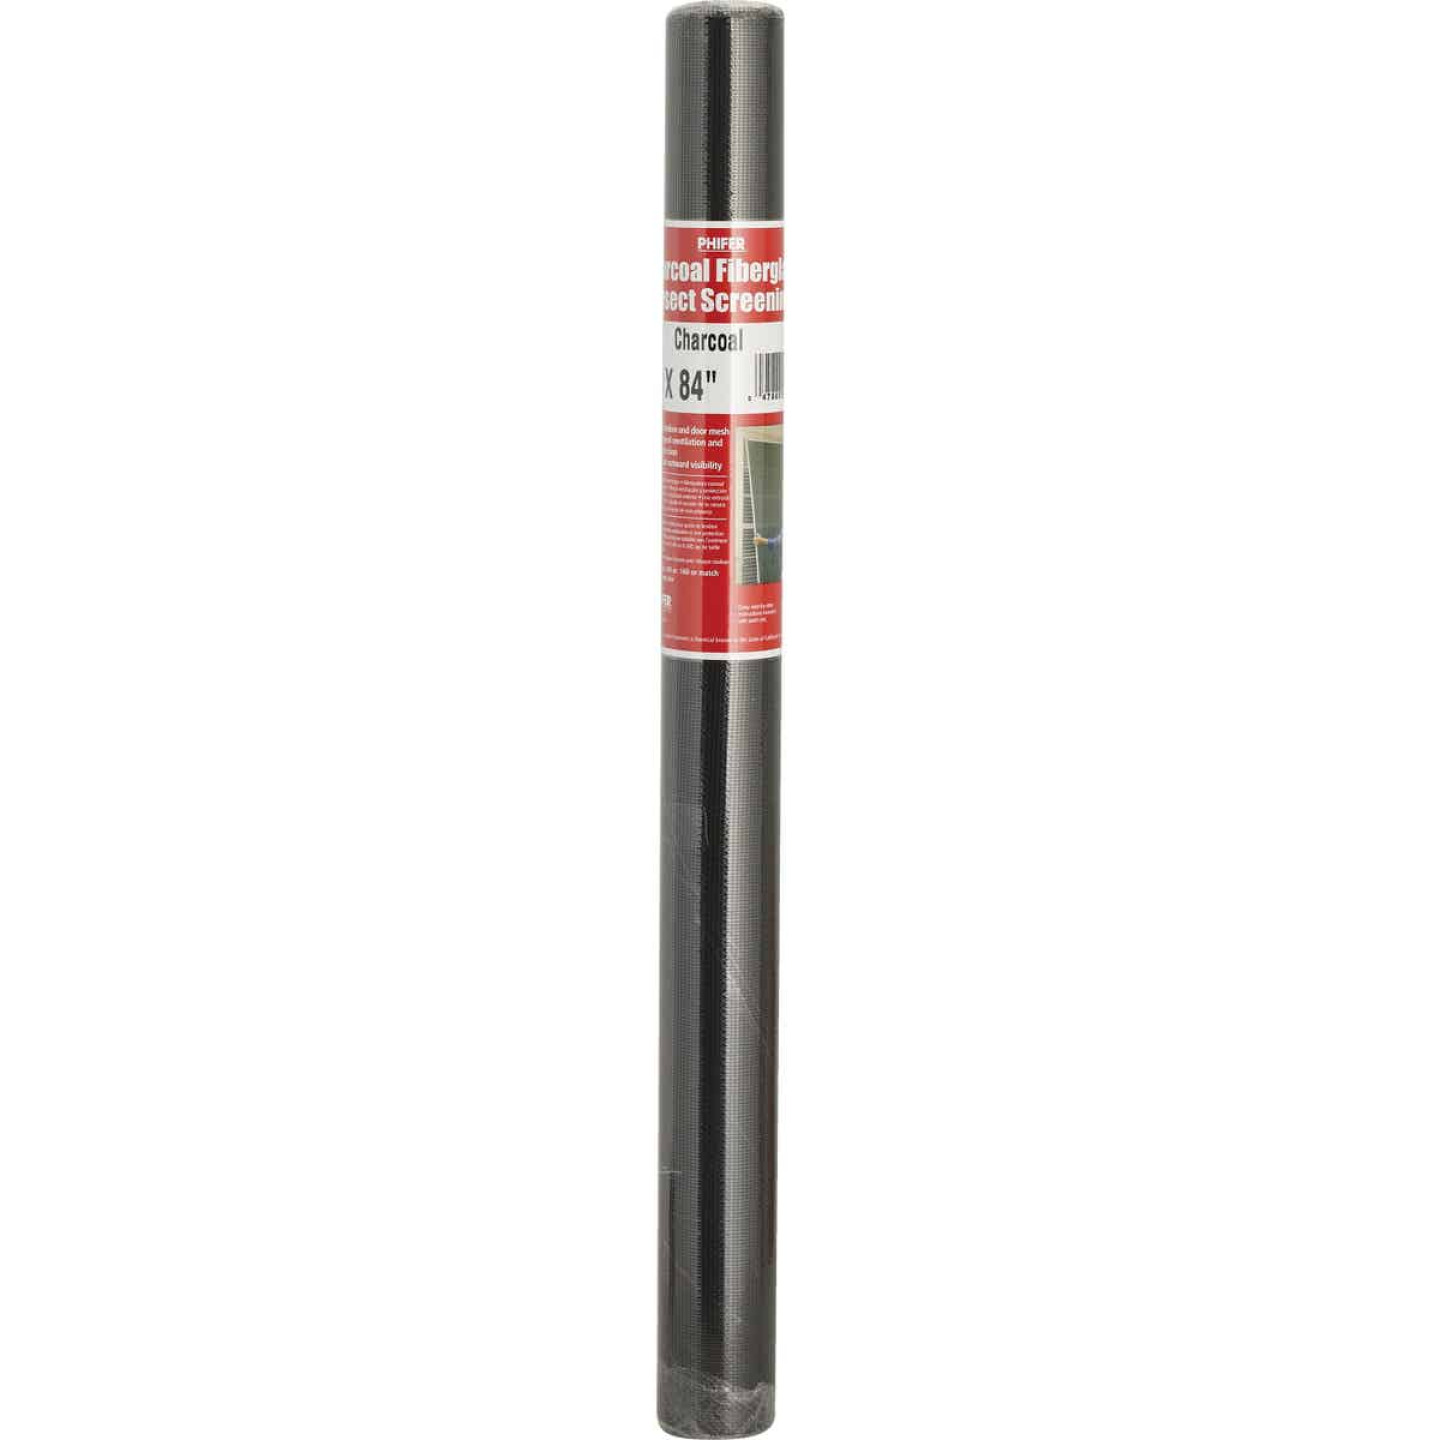 Phifer 24 In. x 84 In. Charcoal Fiberglass Screen Cloth Ready Rolls Image 2